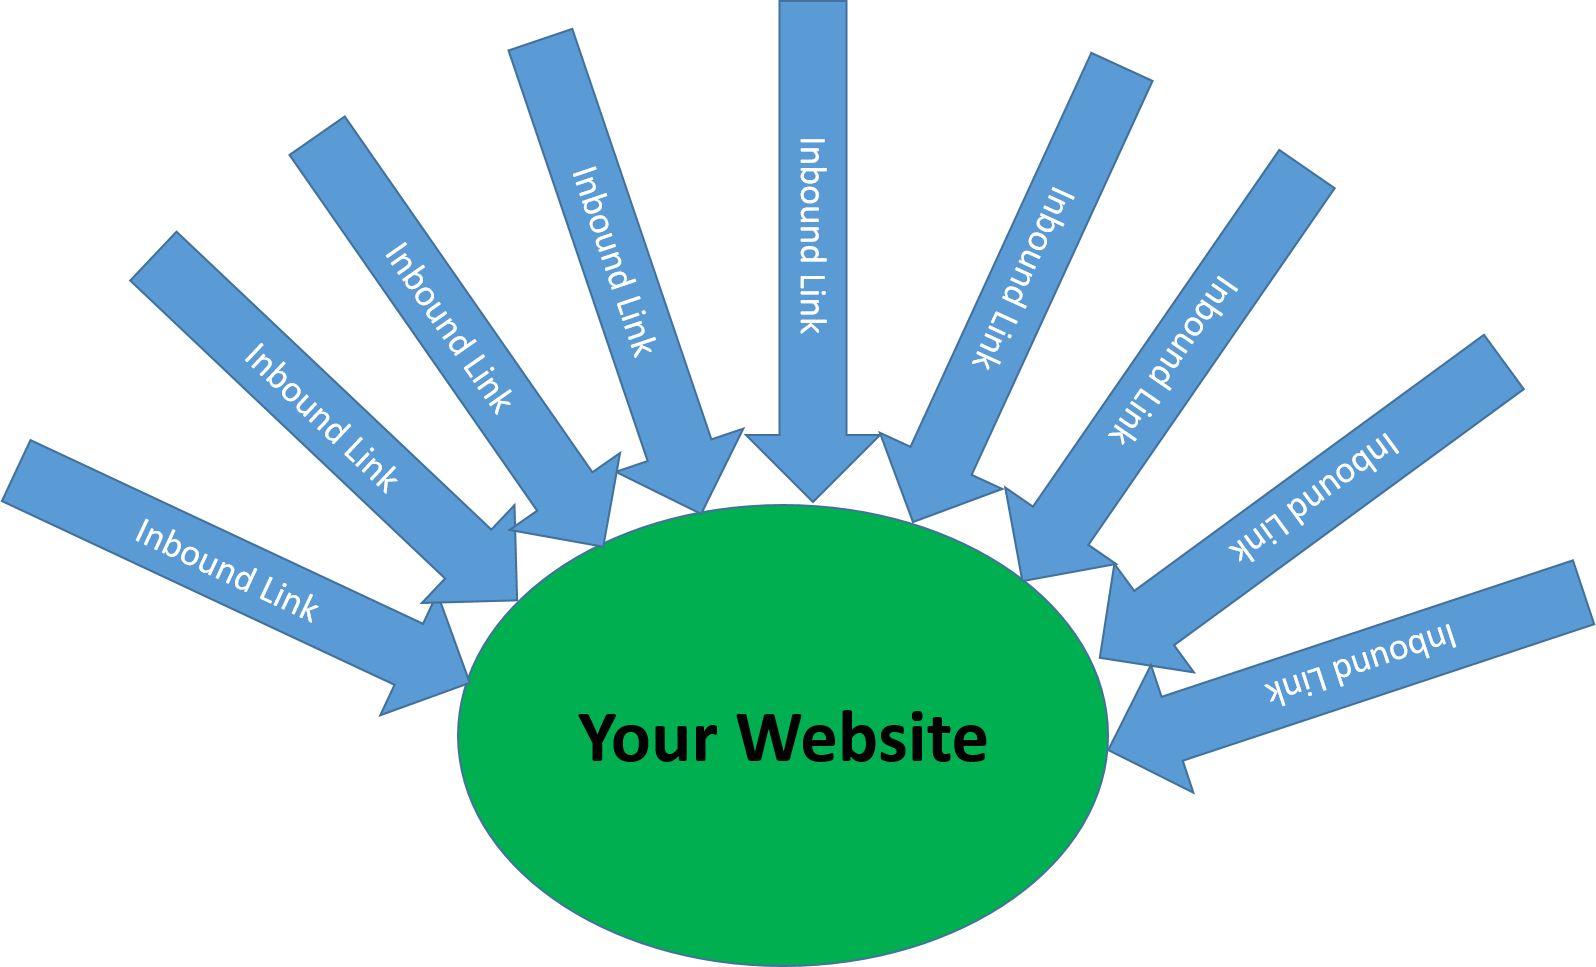 What are Inbound Links in SEO